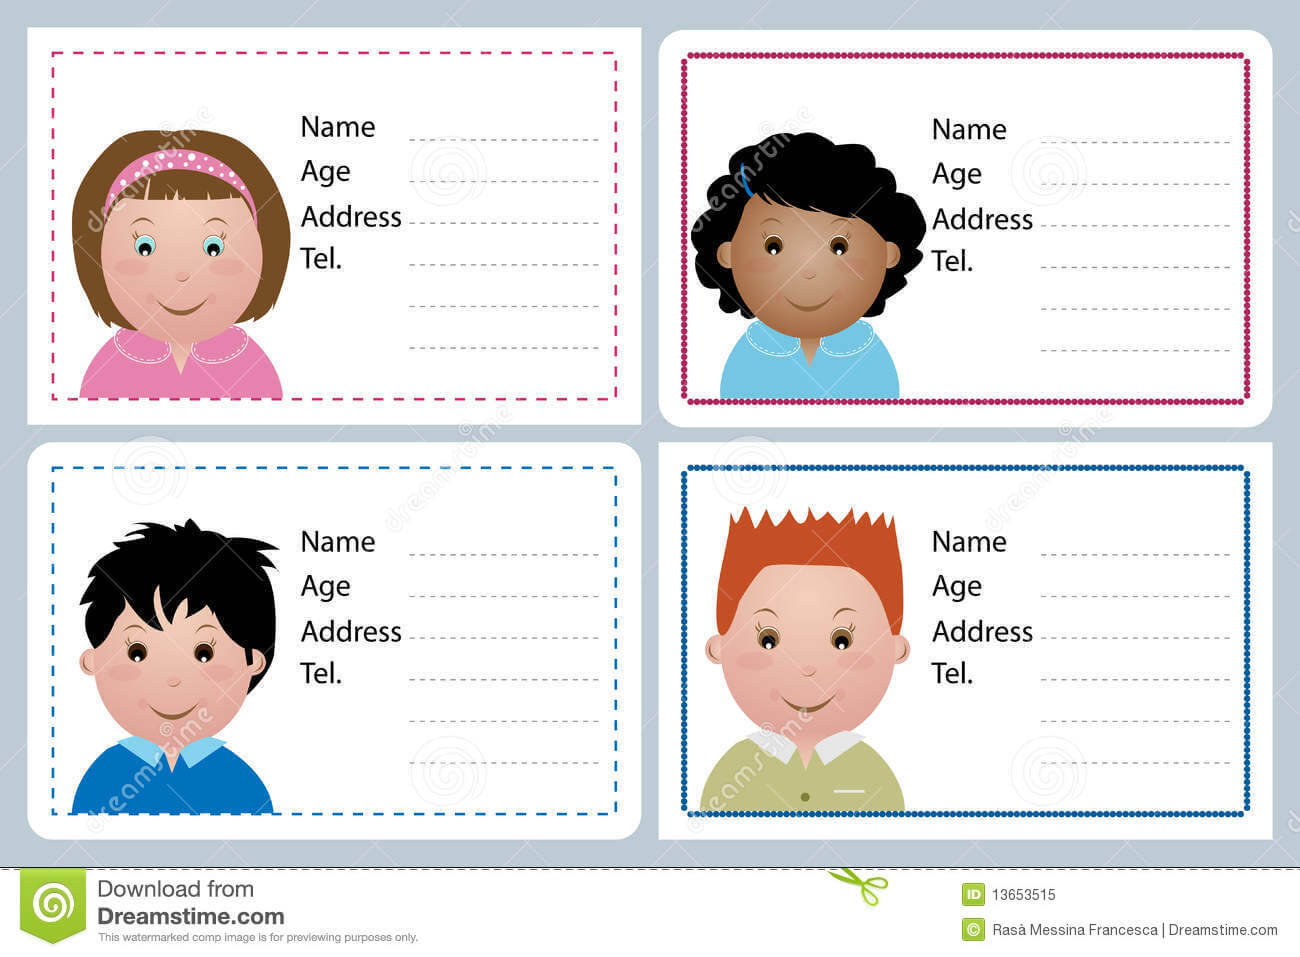 002 Template Ideas Child Id Card Free Flat Astounding Kid With Id Card Template For Kids